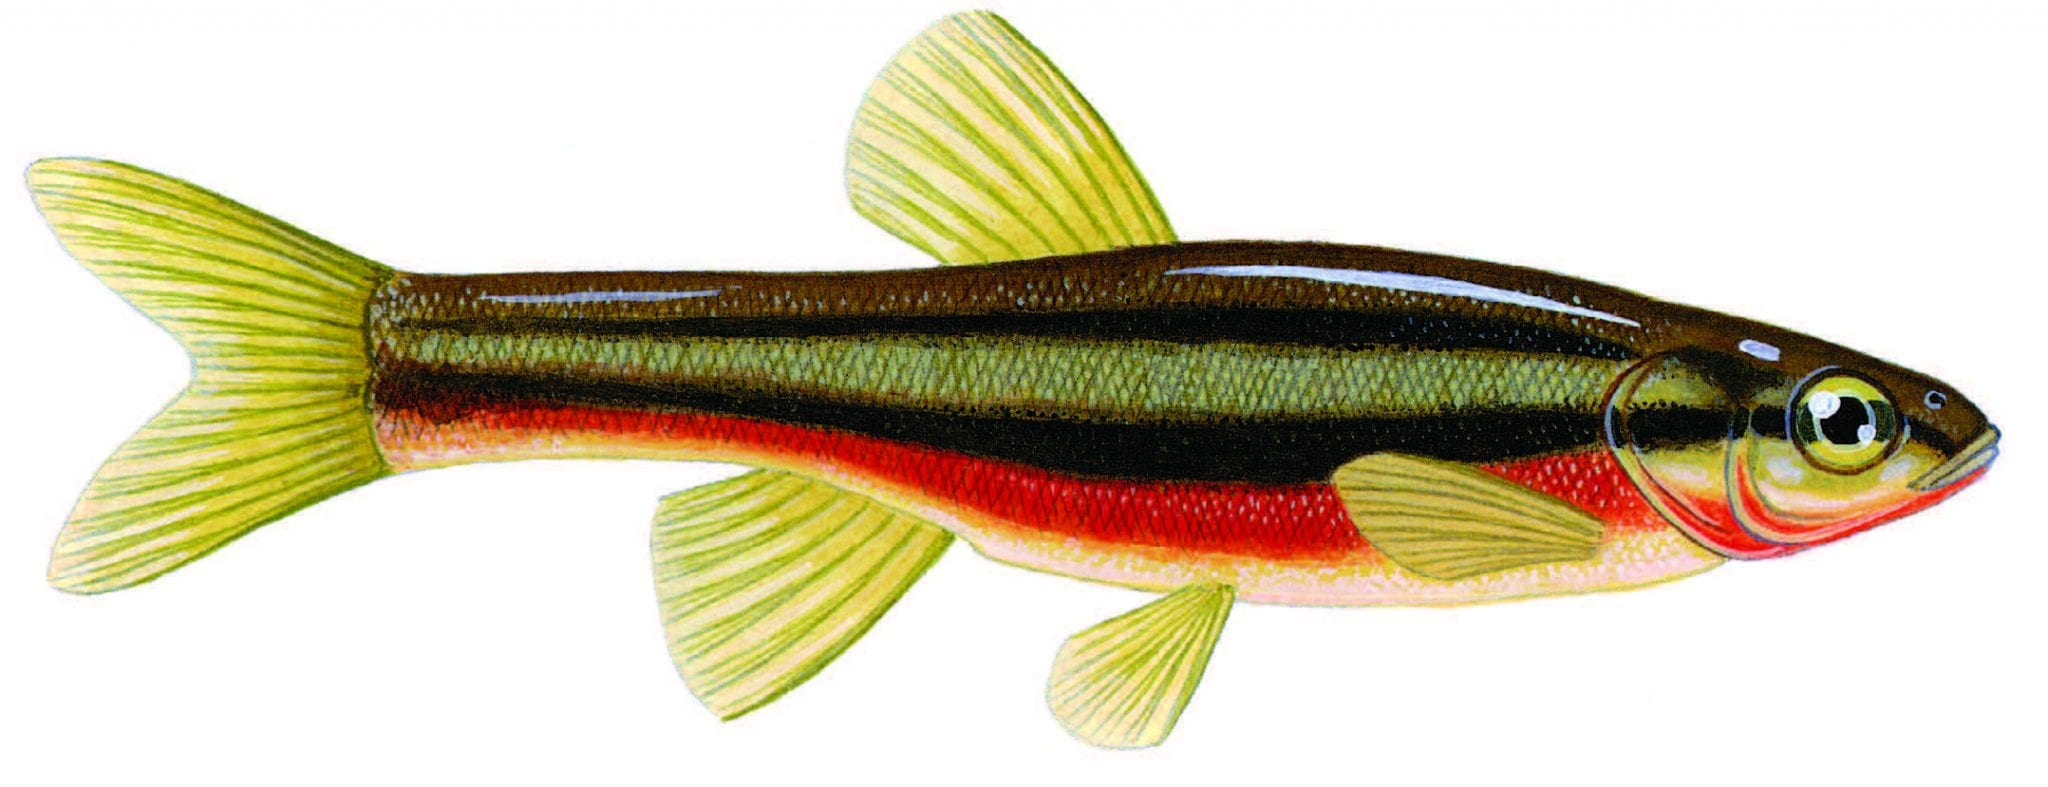 Freshwater fish dace - Northern Redbelly Dace